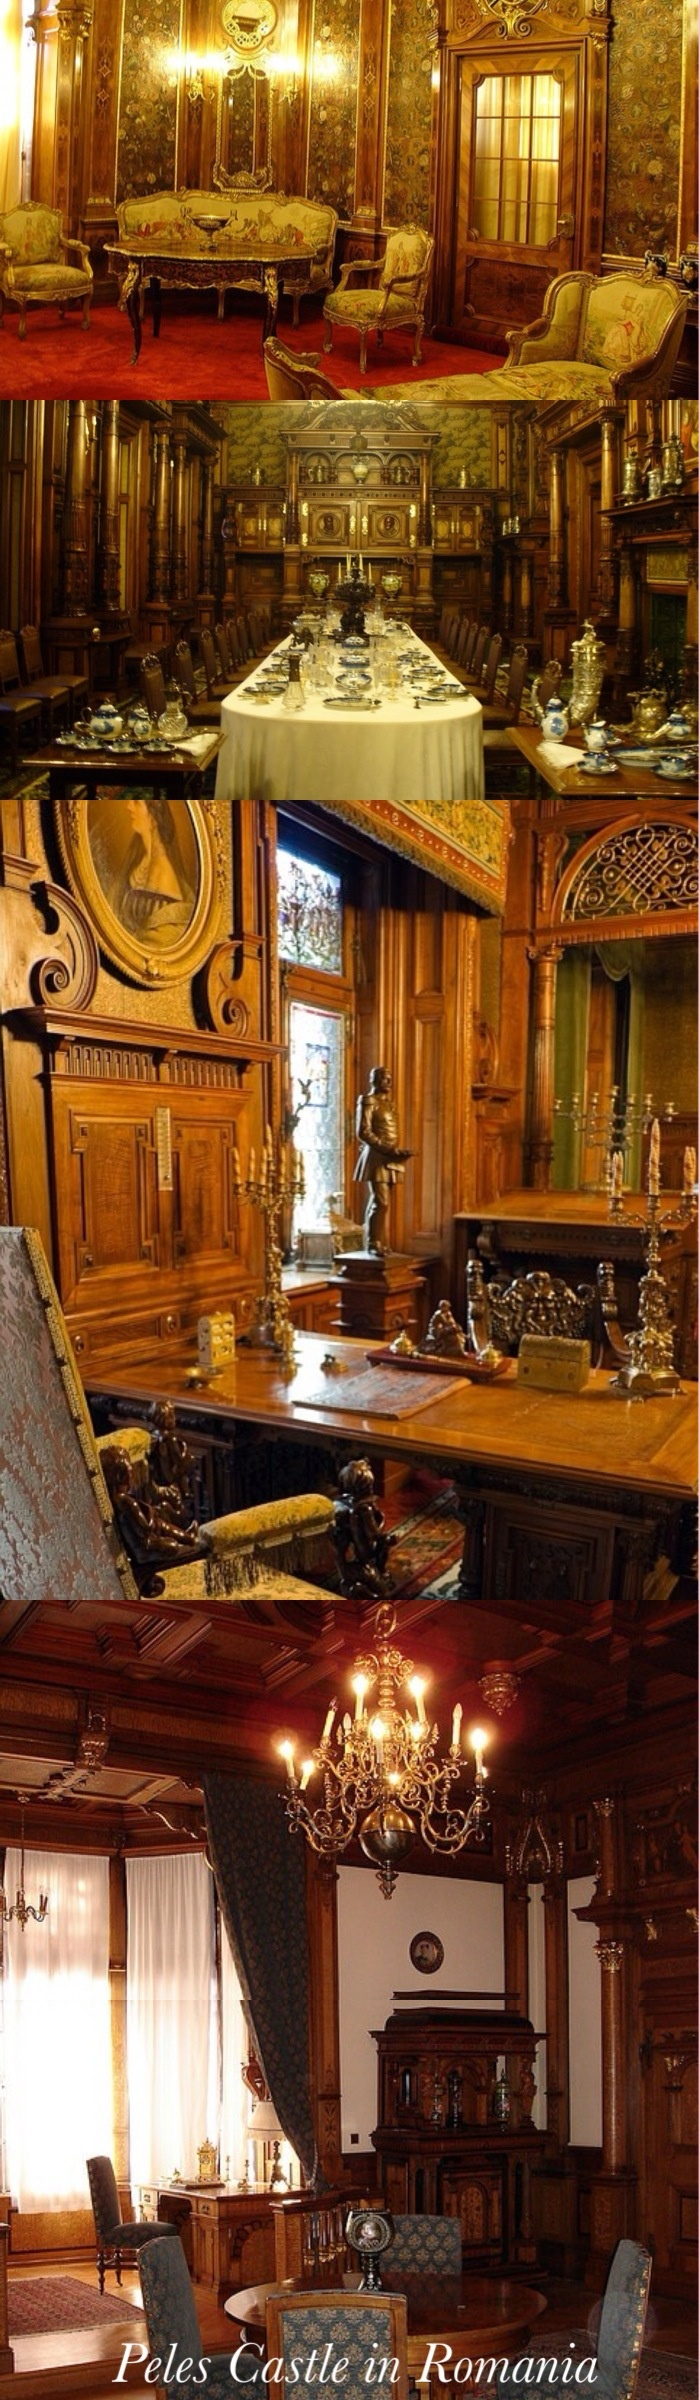 The Peles Castle interior of the castle is a true wonder, due to the beauty and richness of the sculpted wood and the stained glass windows. As you get in the vestibule, you are on the Honor Staircase, in front of the most important rulers of old Romania.